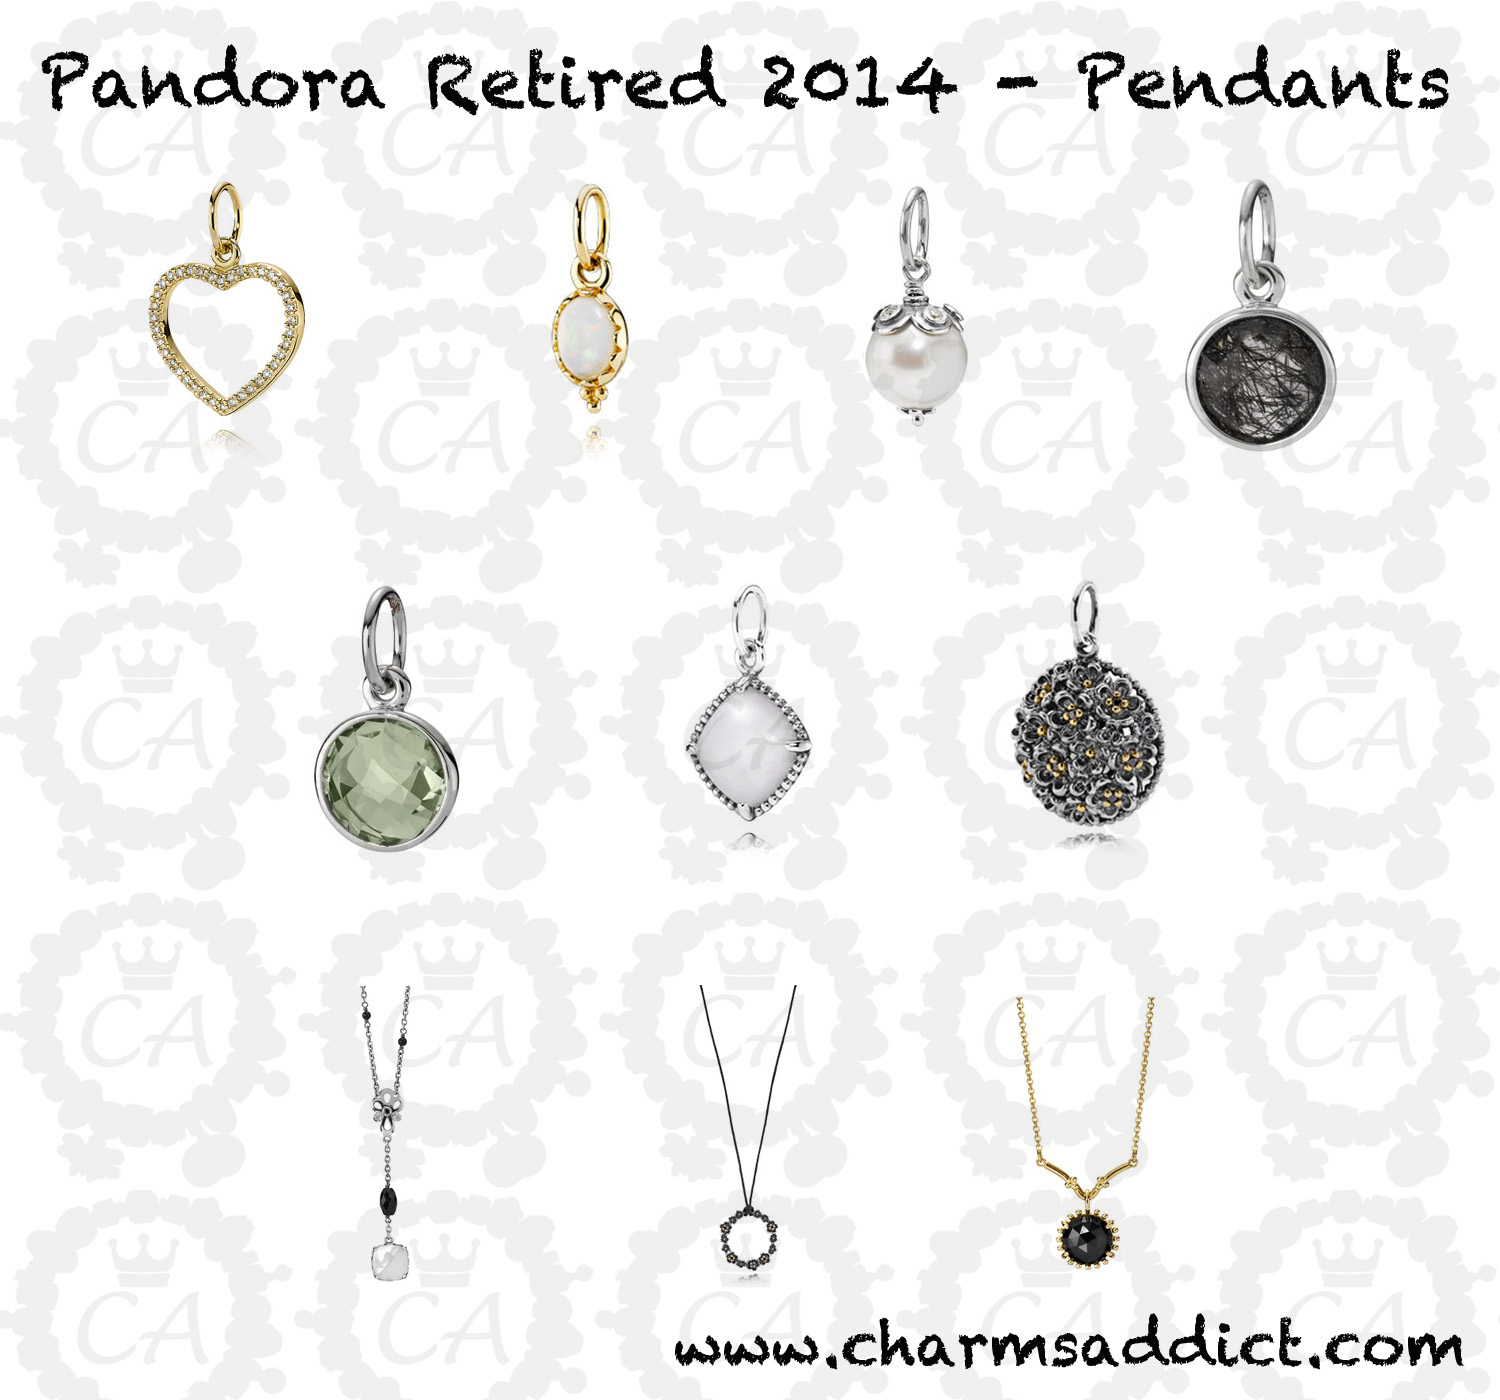 Pandora jewelry second retirement 2014 charms addict pandora retirement 2014 pendants aloadofball Image collections